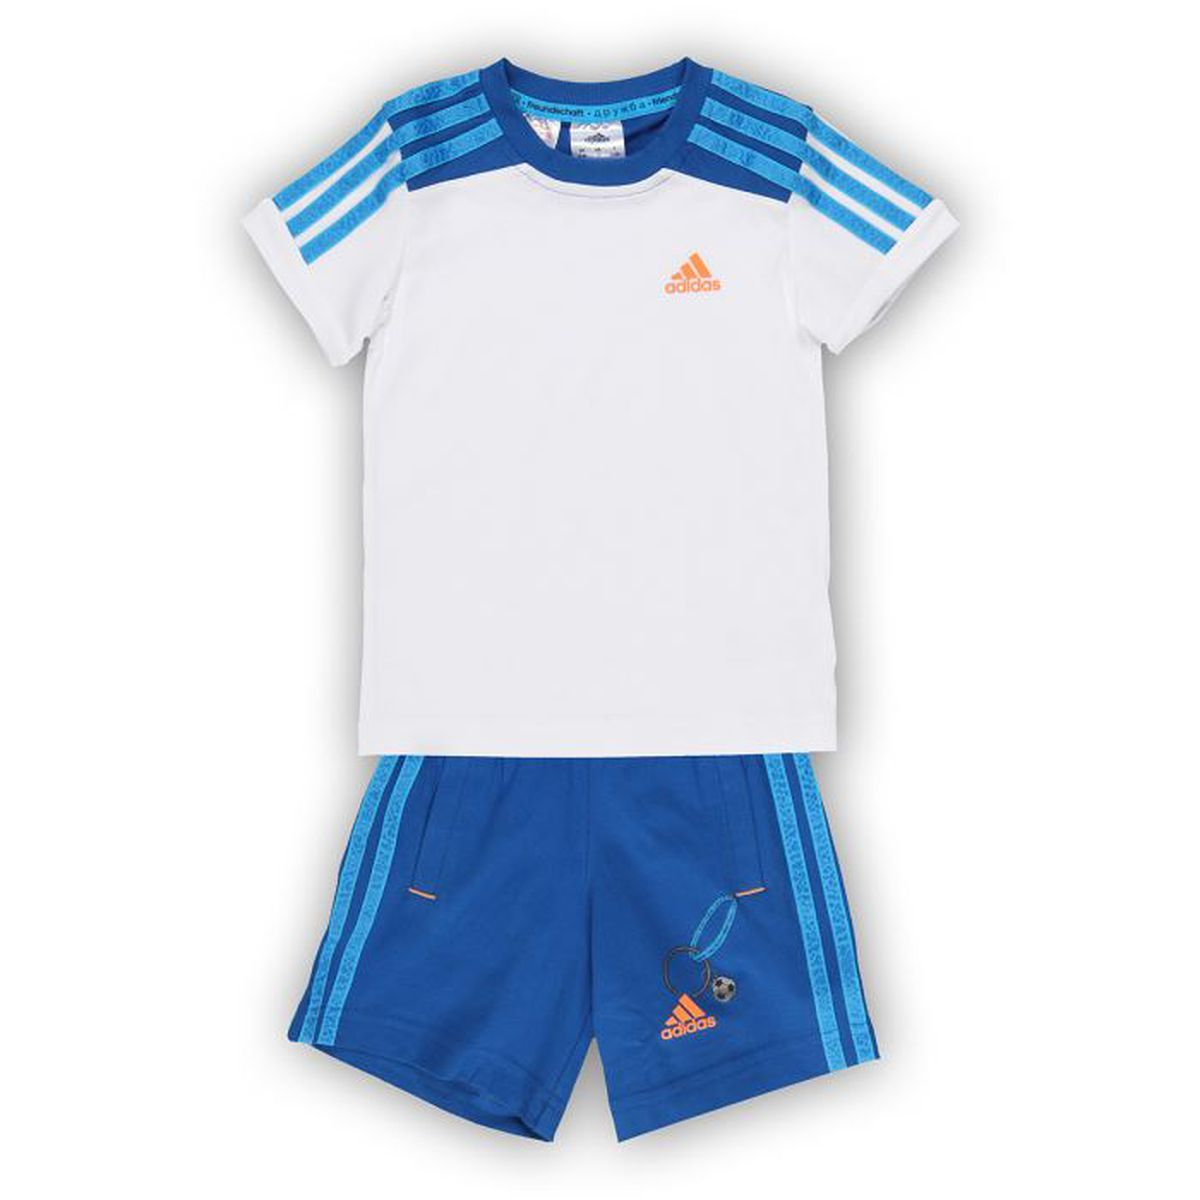 adidas ensemble t shirt short enfant gar on blanc et bleu achat vente surv tement cdiscount. Black Bedroom Furniture Sets. Home Design Ideas